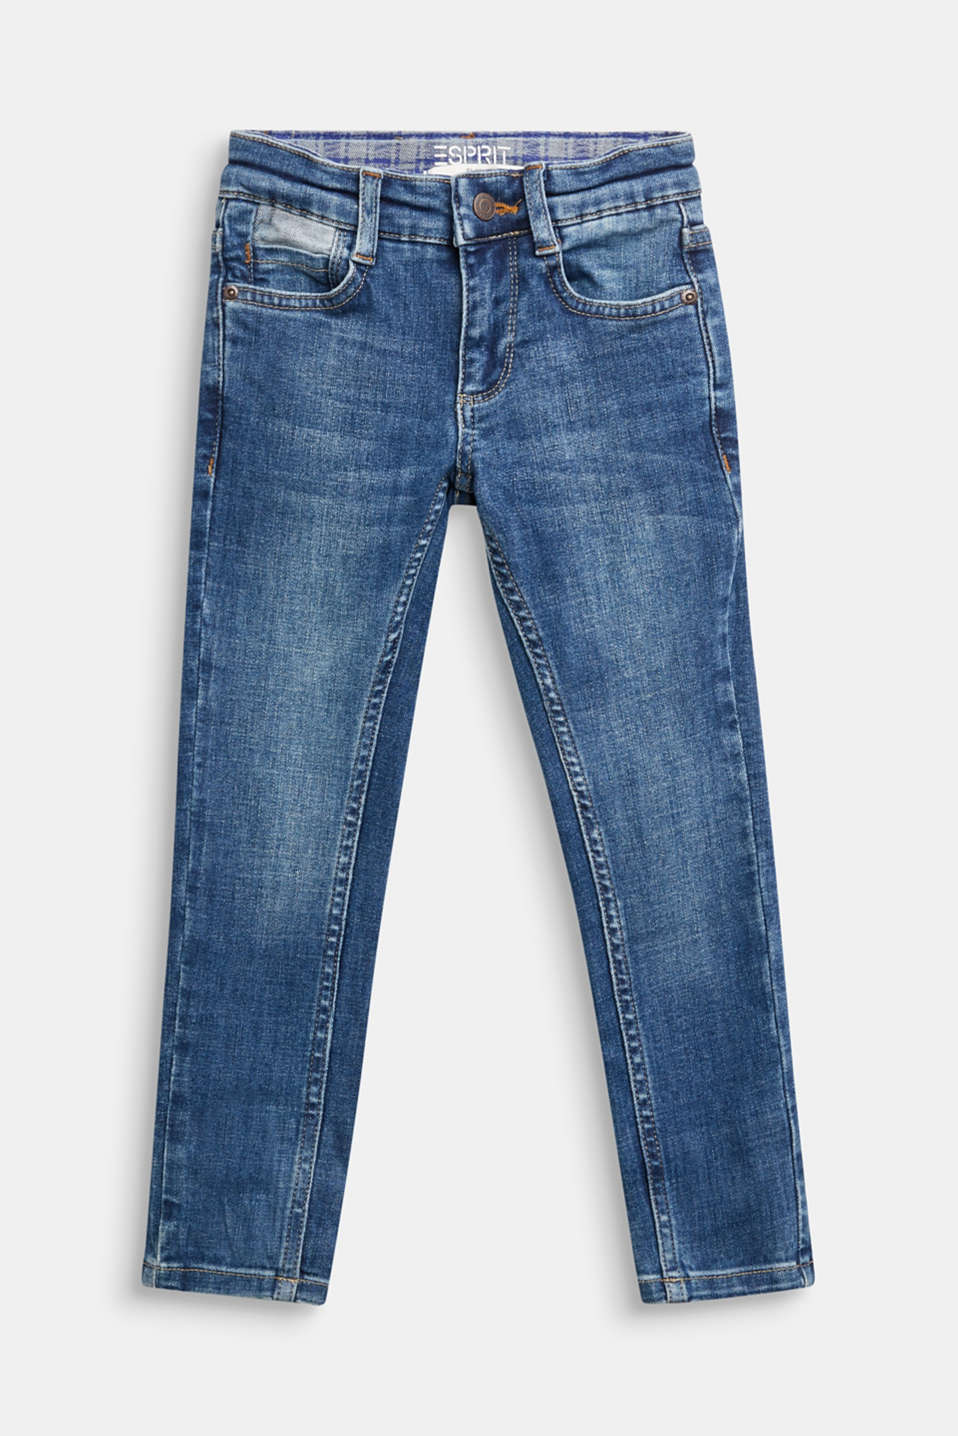 Esprit - Slim-fitting stretch jeans with an adjustable waistband